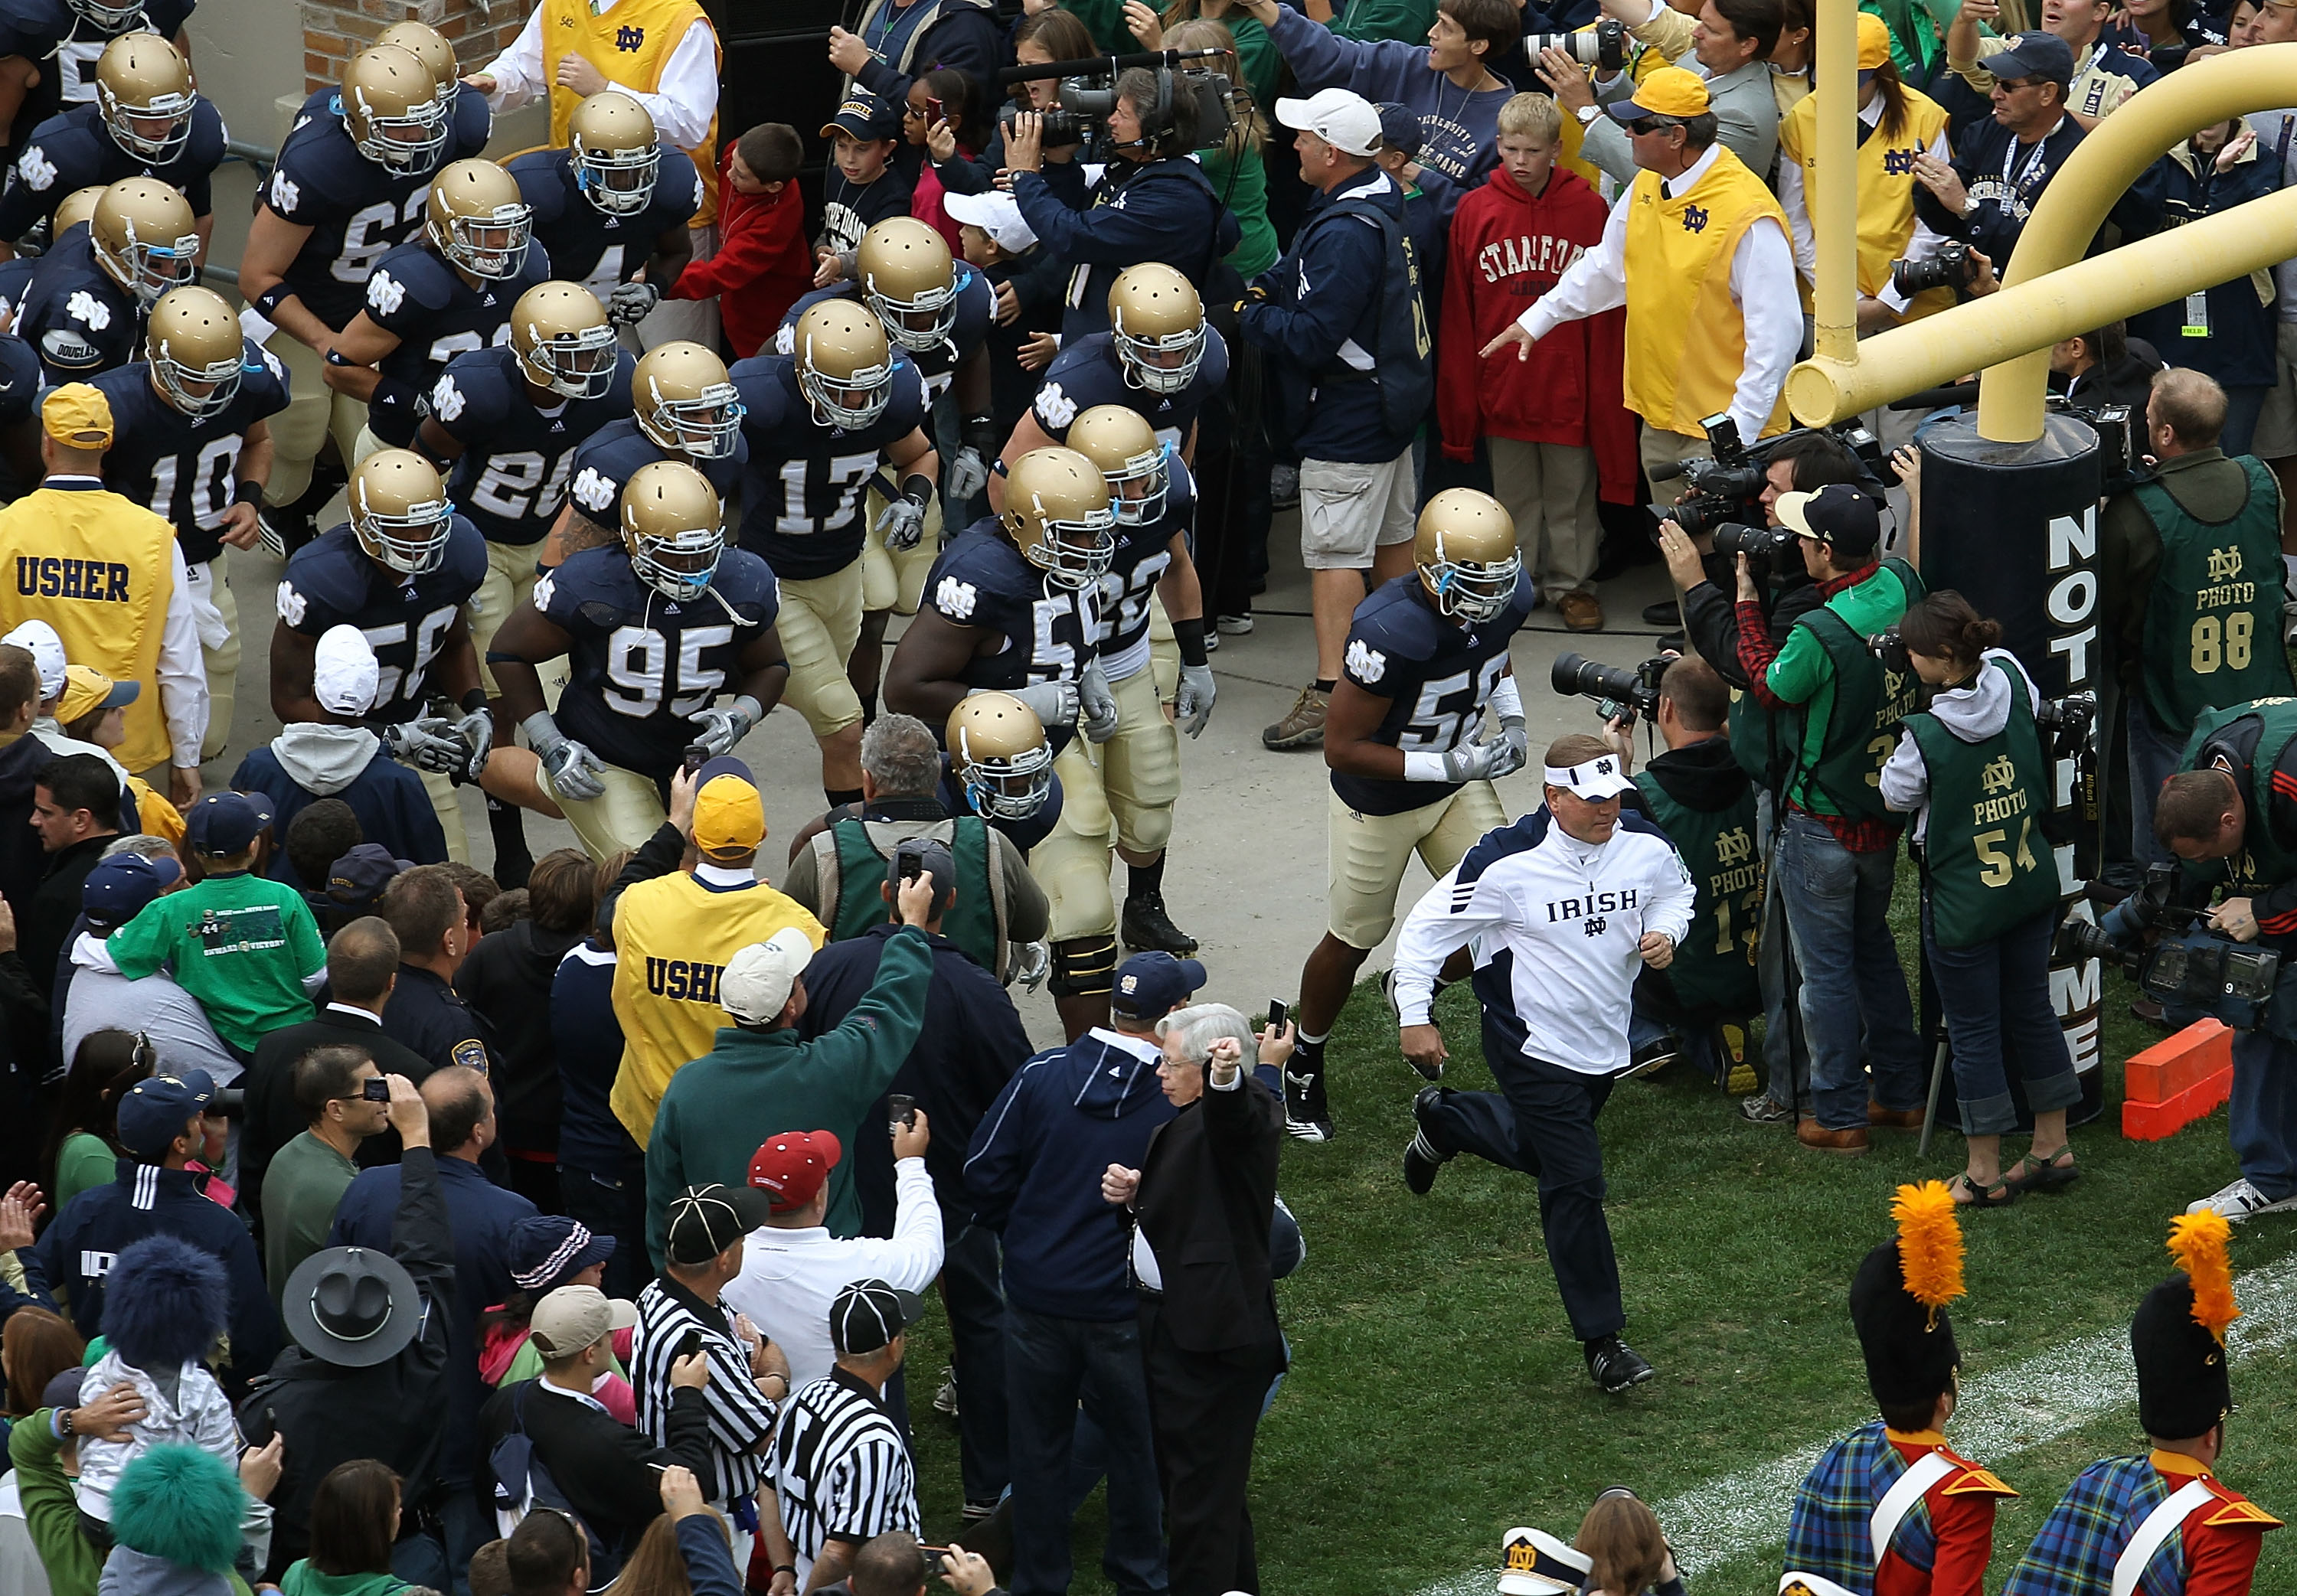 SOUTH BEND, IN - SEPTEMBER 25: Head coach Brian Kelly of the Notre Dame Fighting Irish leads his team onto the field before taking on the Stanford Cardinal at Notre Dame Stadium on September 25, 2010 in South Bend, Indiana. Stanford defeated Notre Dame 37